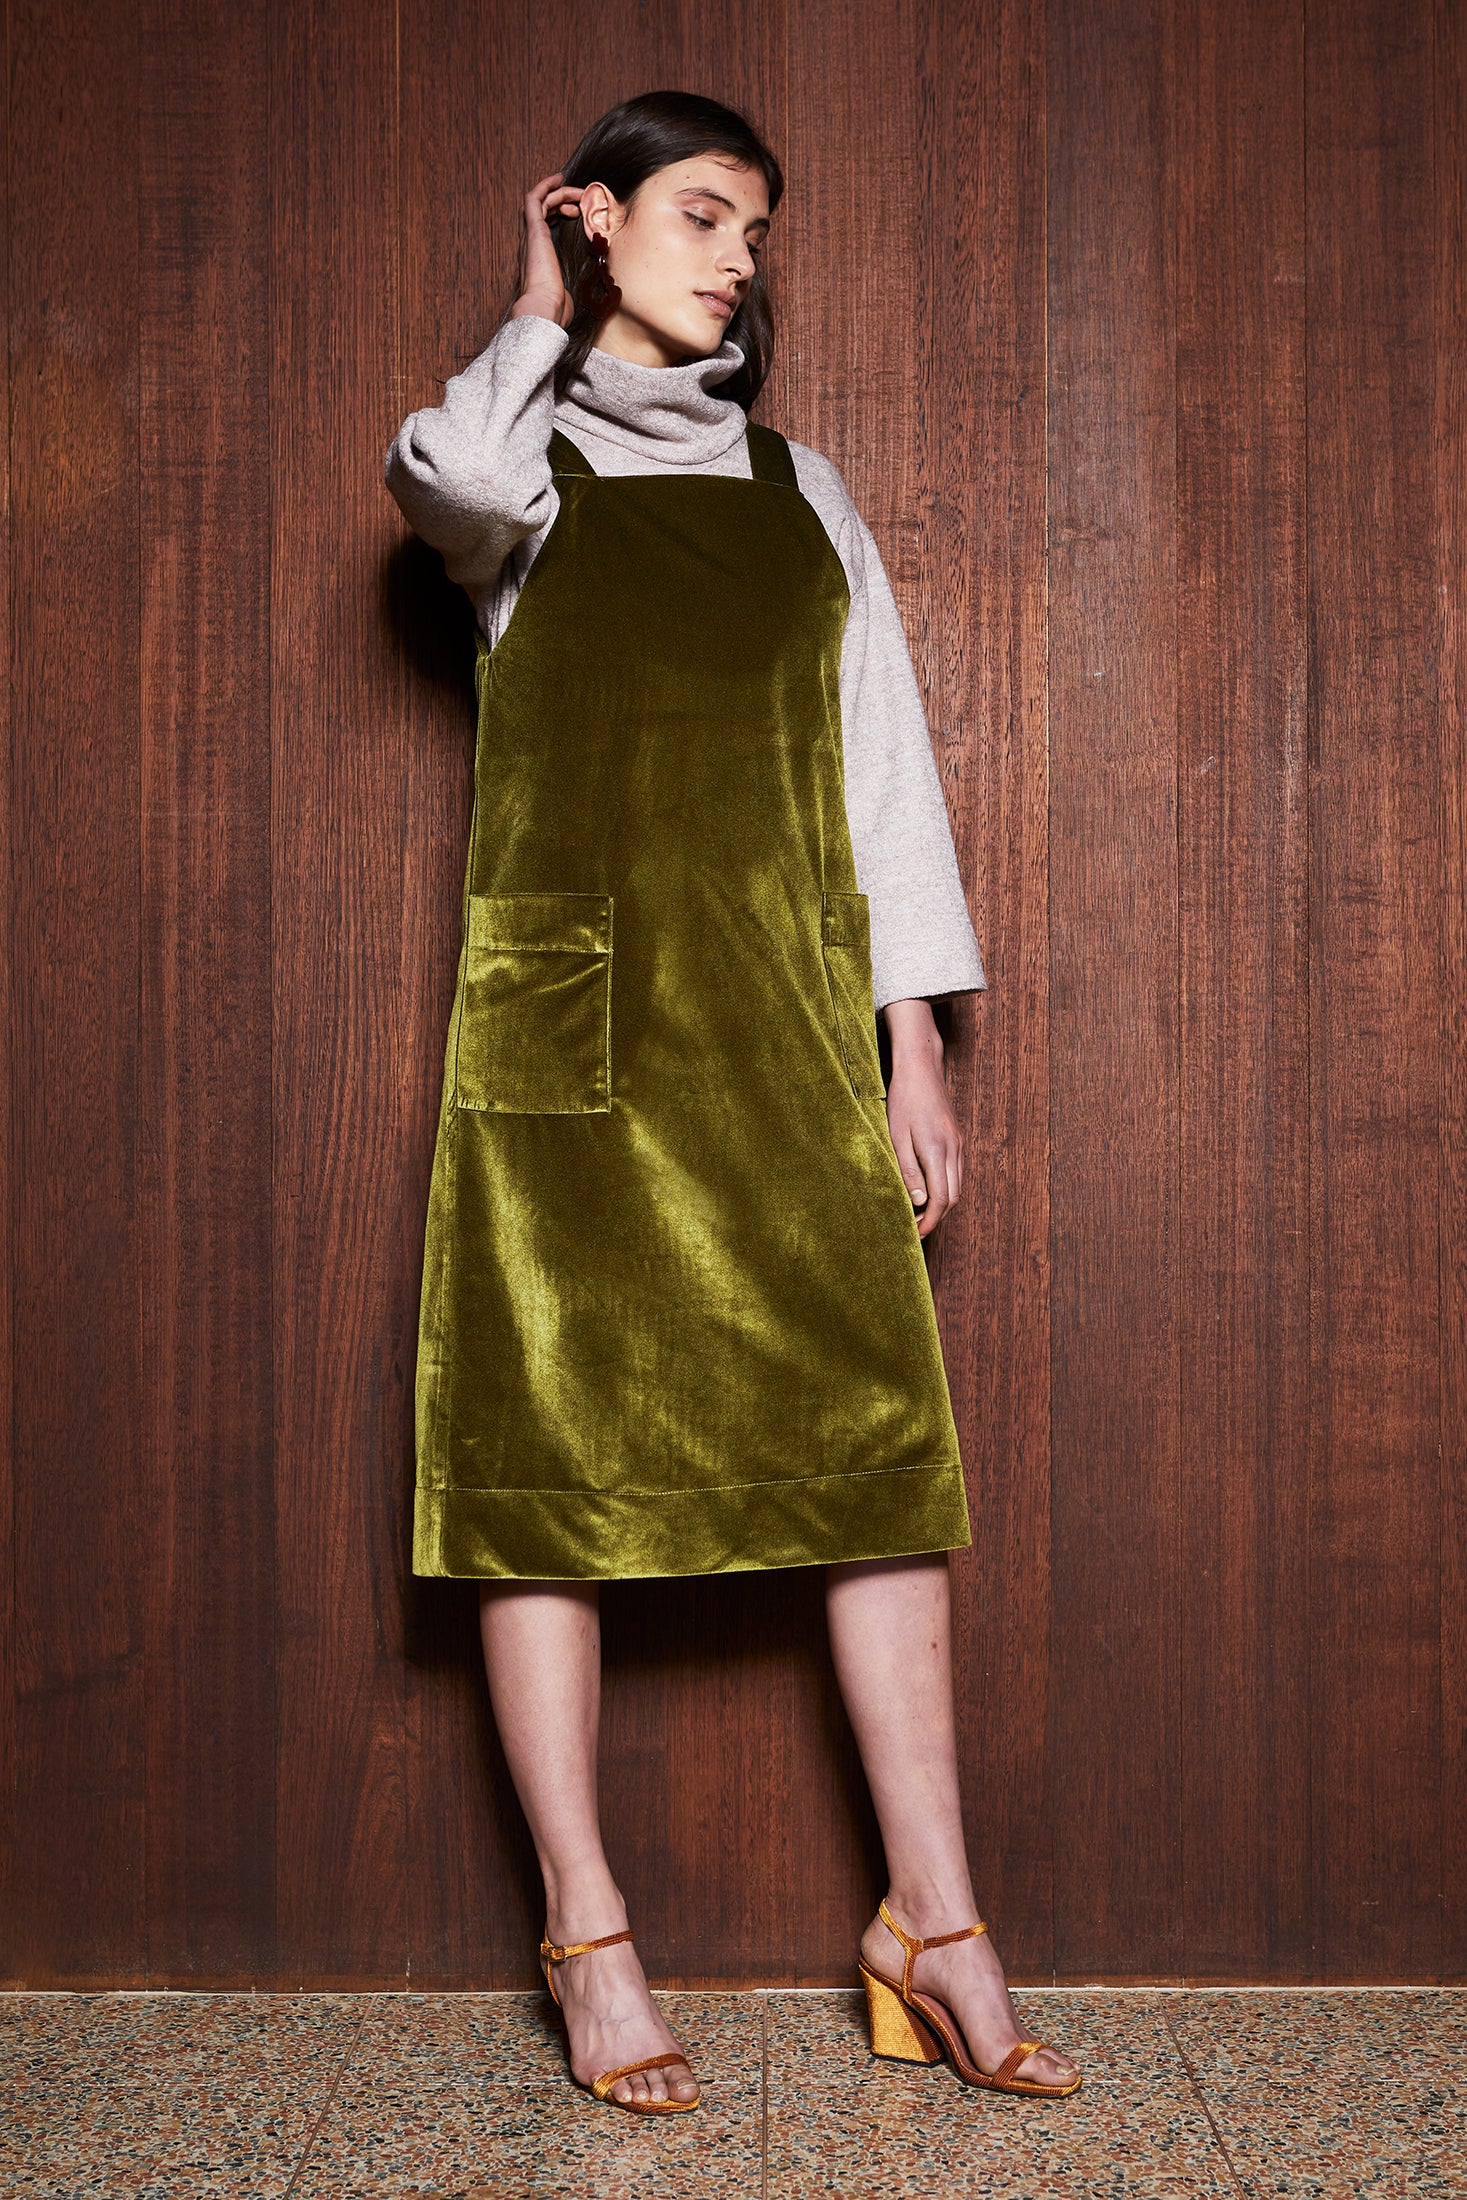 Women's Clothing in Melbourne Australia Moss Pinafore Green Velvet Dress